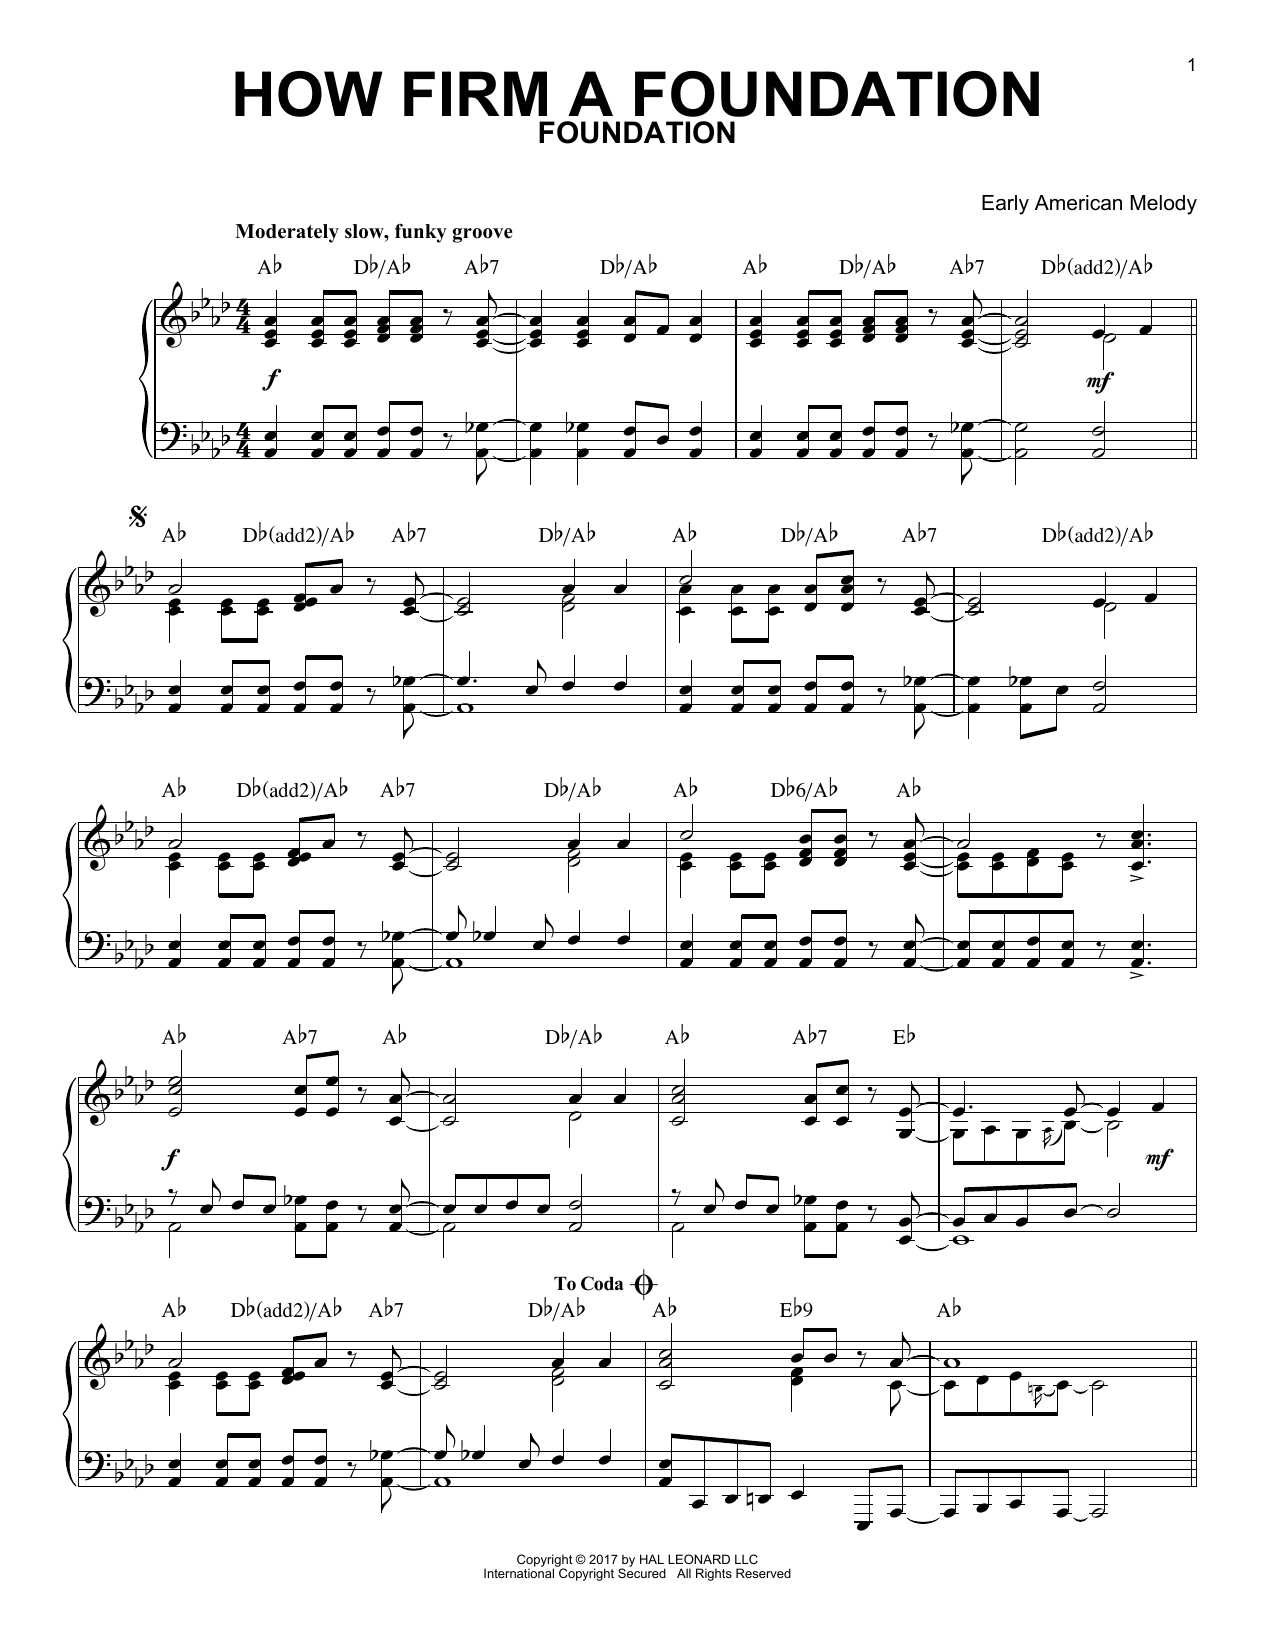 Early American Melody How Firm a Foundation [Jazz version] sheet music notes and chords. Download Printable PDF.